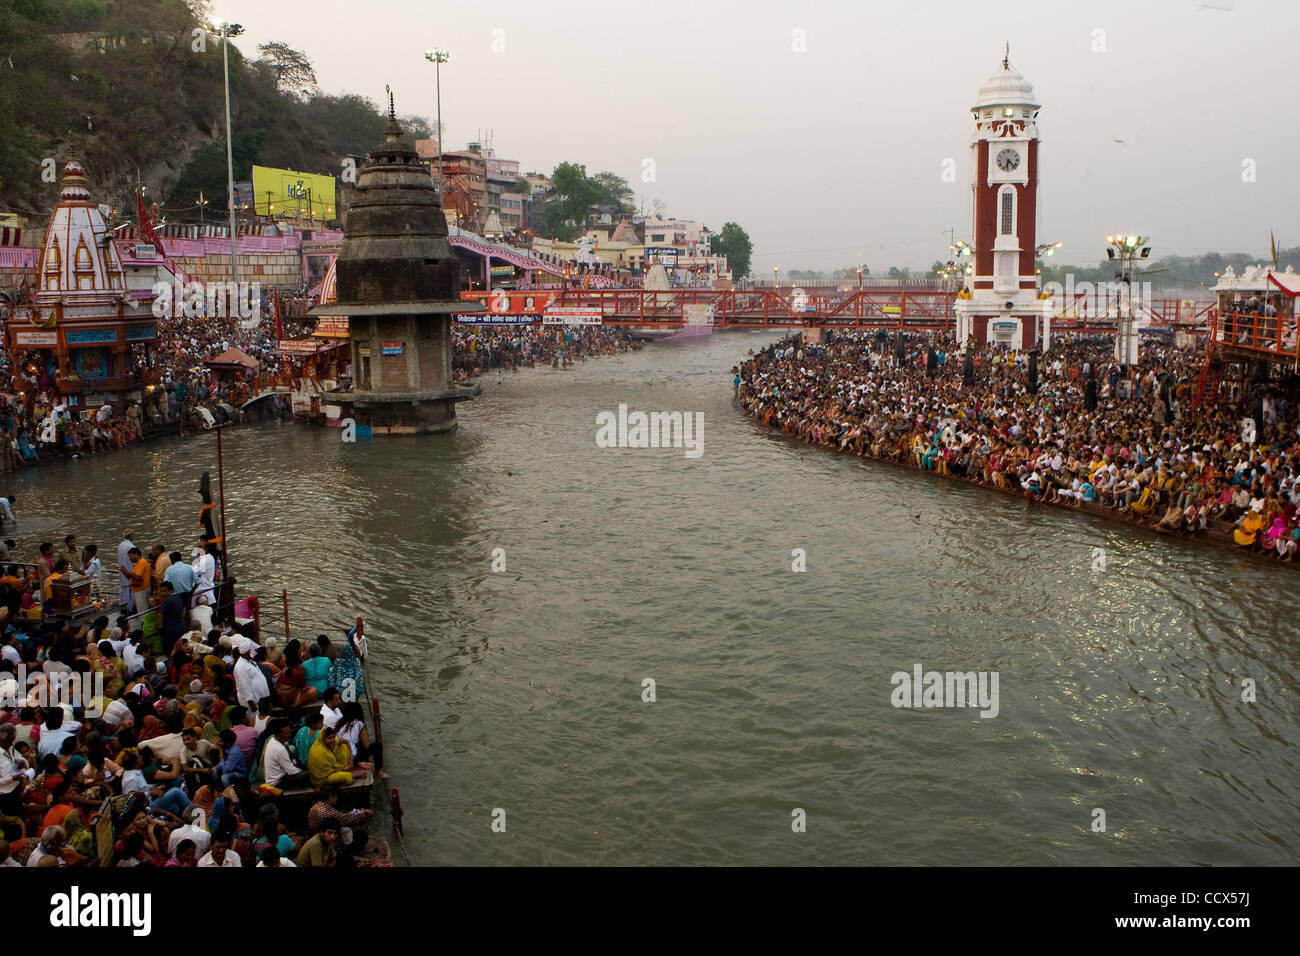 Apr 13, 2010 - India - The Kumbh Mela, world's largest religious festival, which is held every three years and - Stock Image